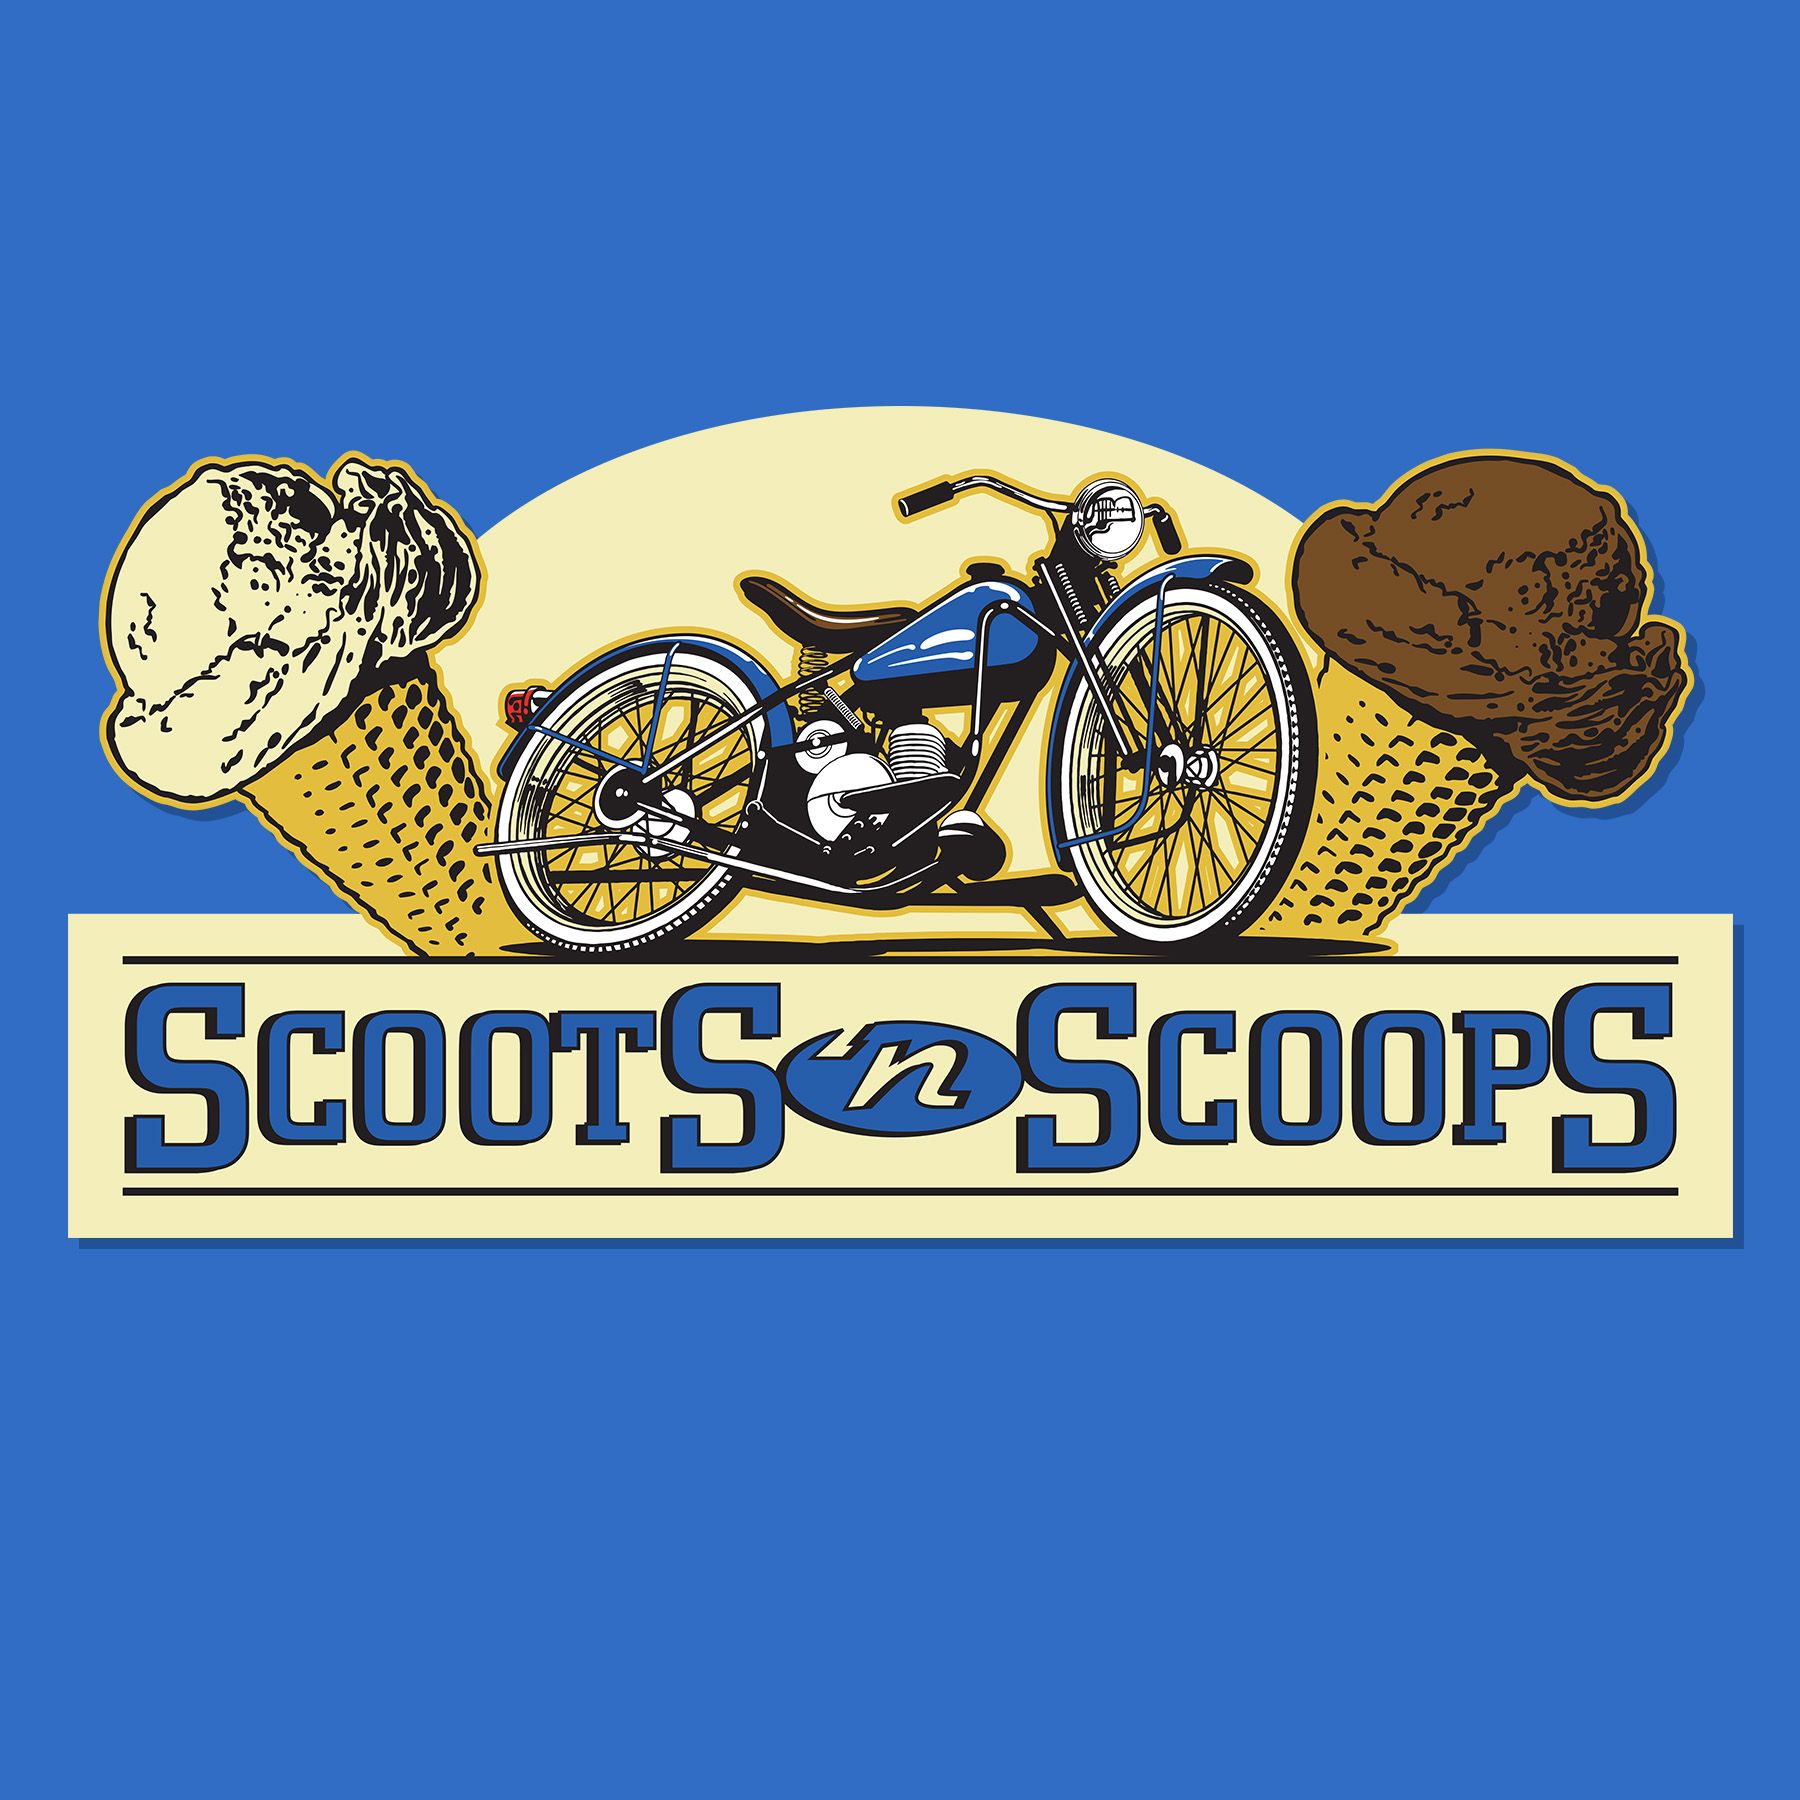 Scoots & Scoops.jpg